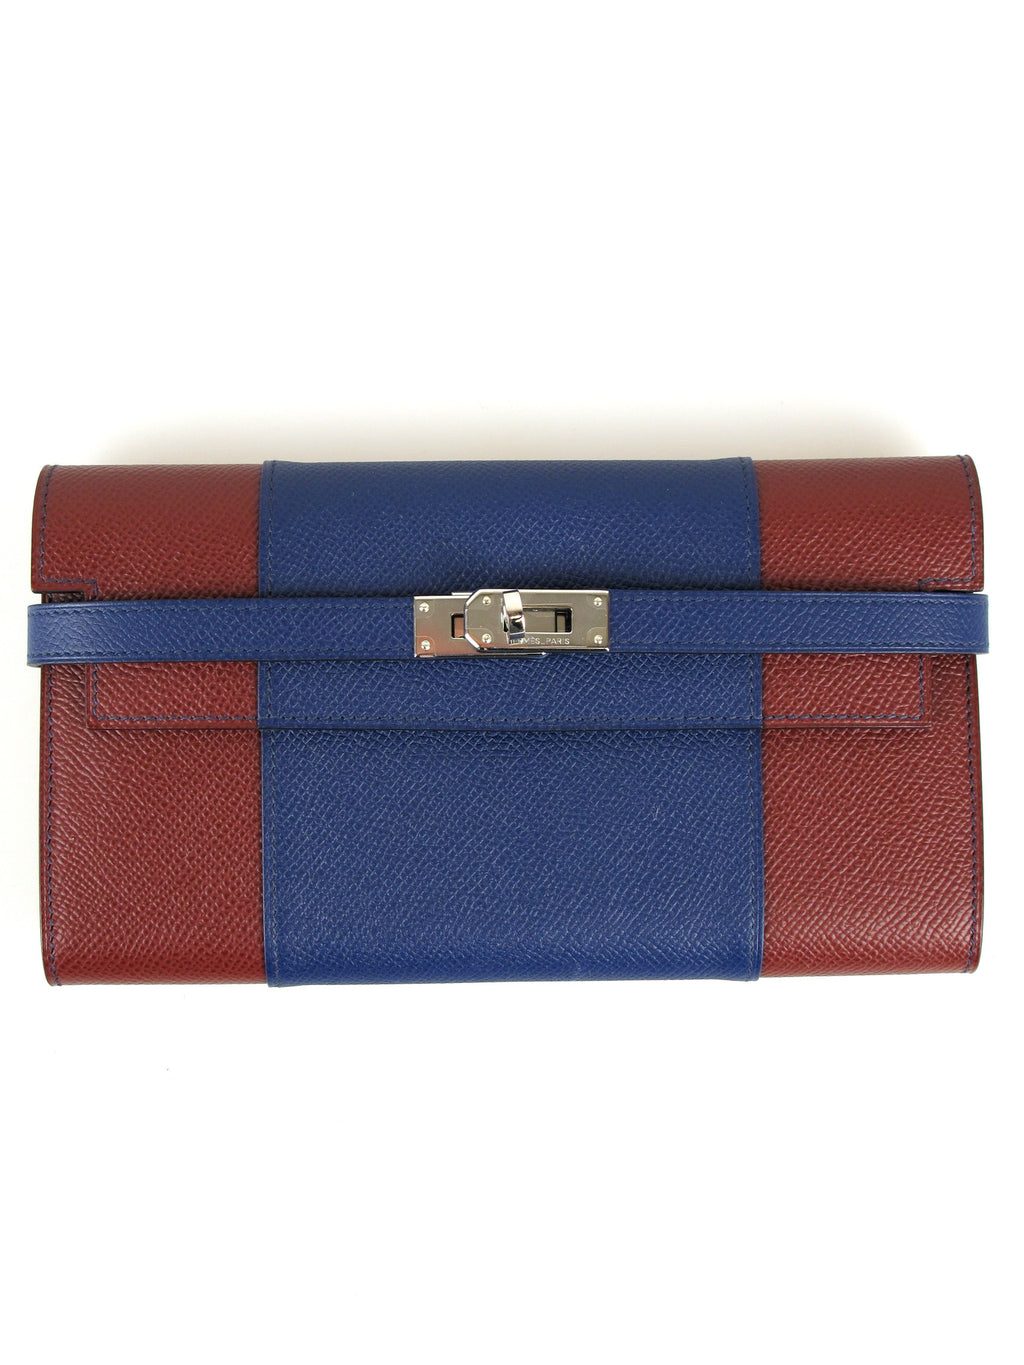 HERMES Kelly Long Wallet 2 Tone Epsom Classique Flag Blue Sapphire Rouge